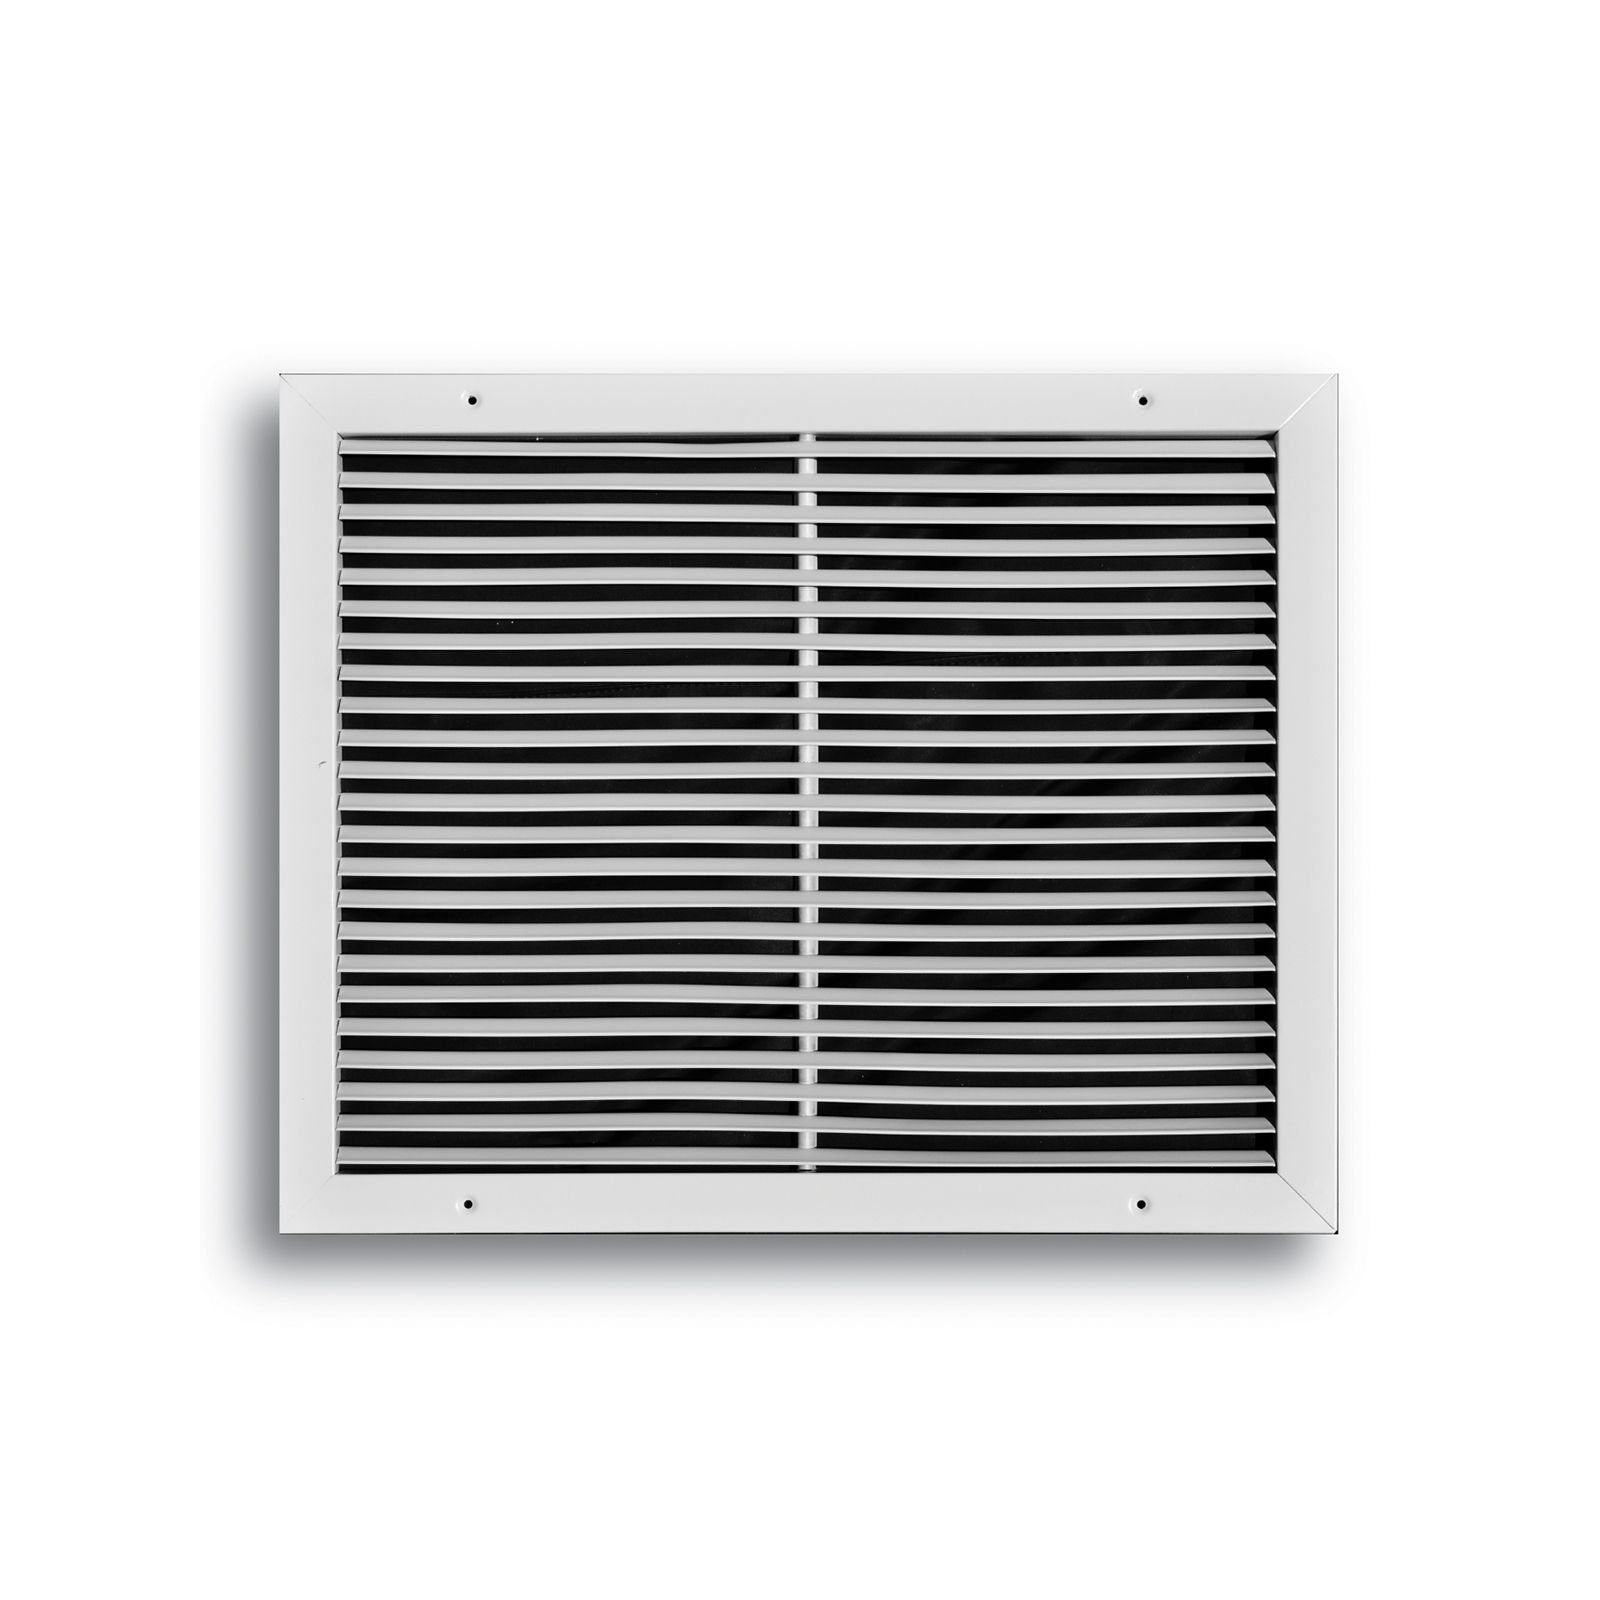 "TRUaire 270 12X08 - Steel Fixed Bar Return Air Grille, White, 12"" X 08"""